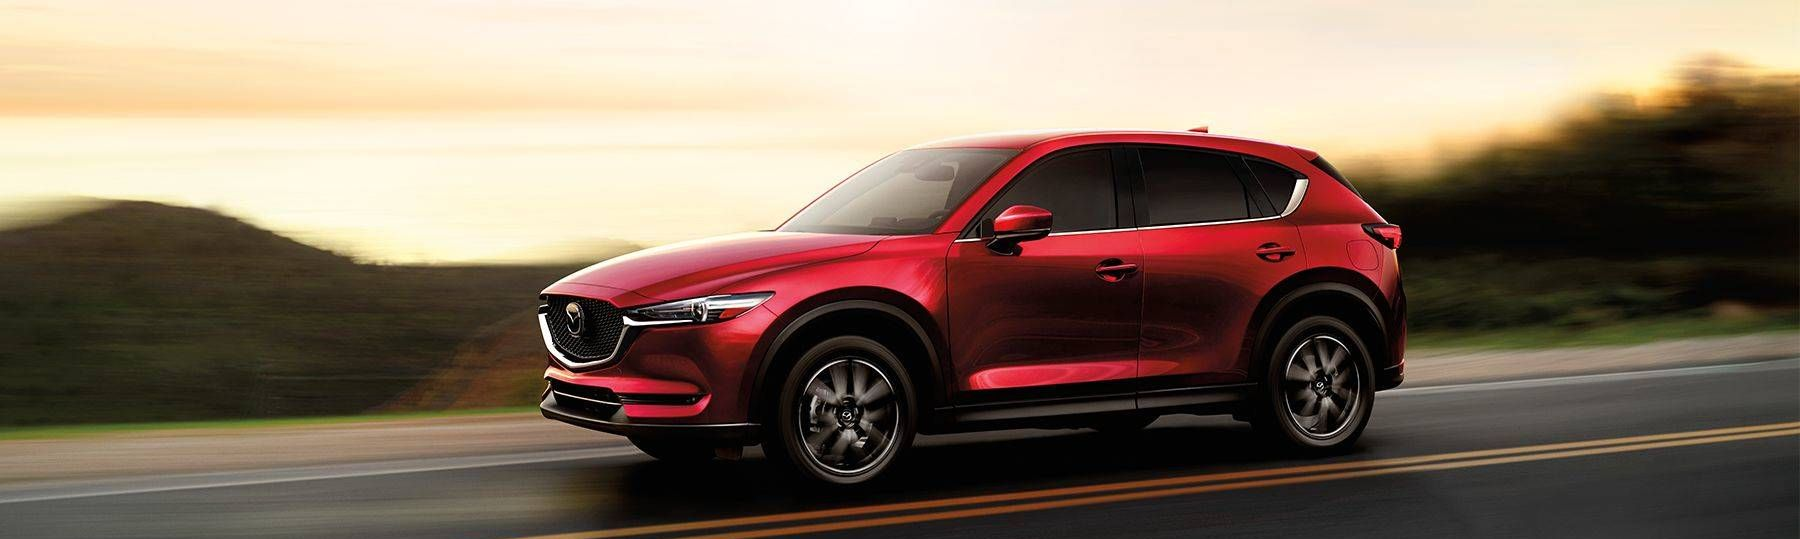 Drive Home in a Fantastic Mazda Today!